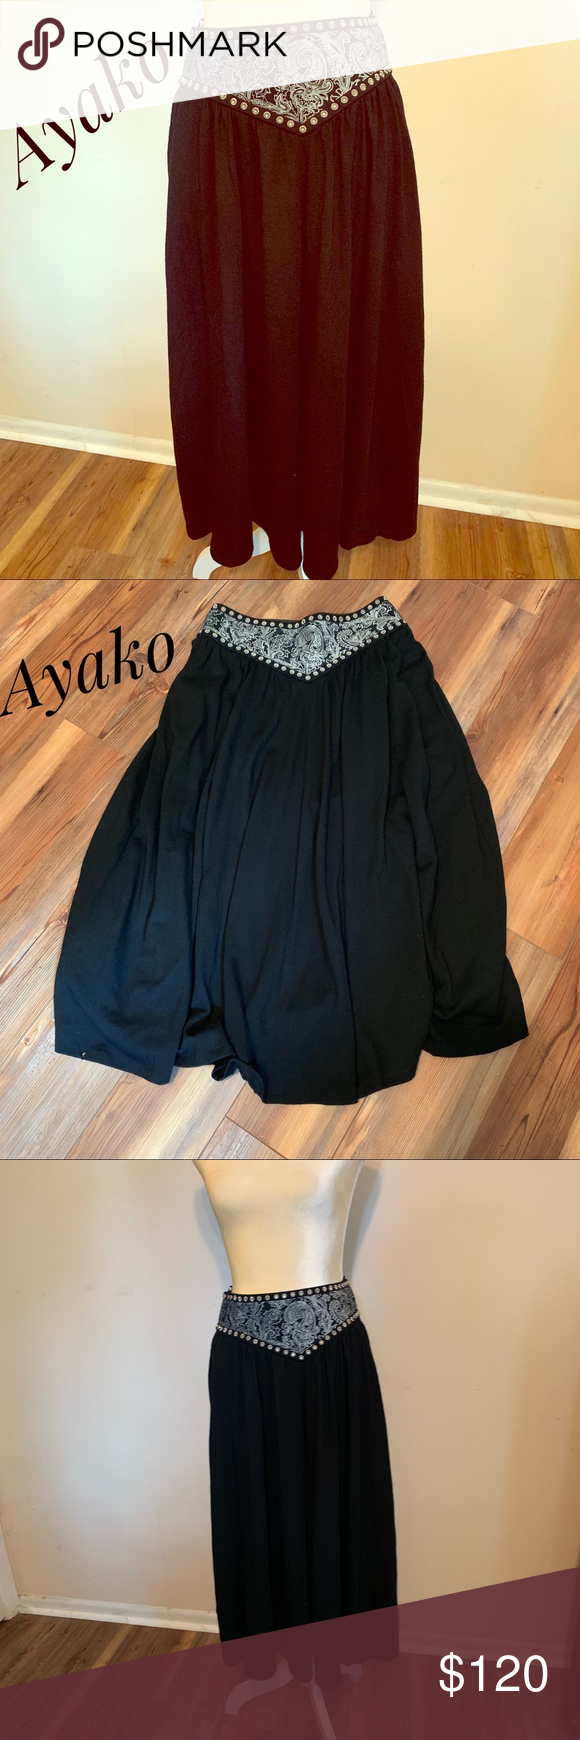 Photo of Ayala Skirt Rare Ayako Skirt. I believe this is a size 8, ju…